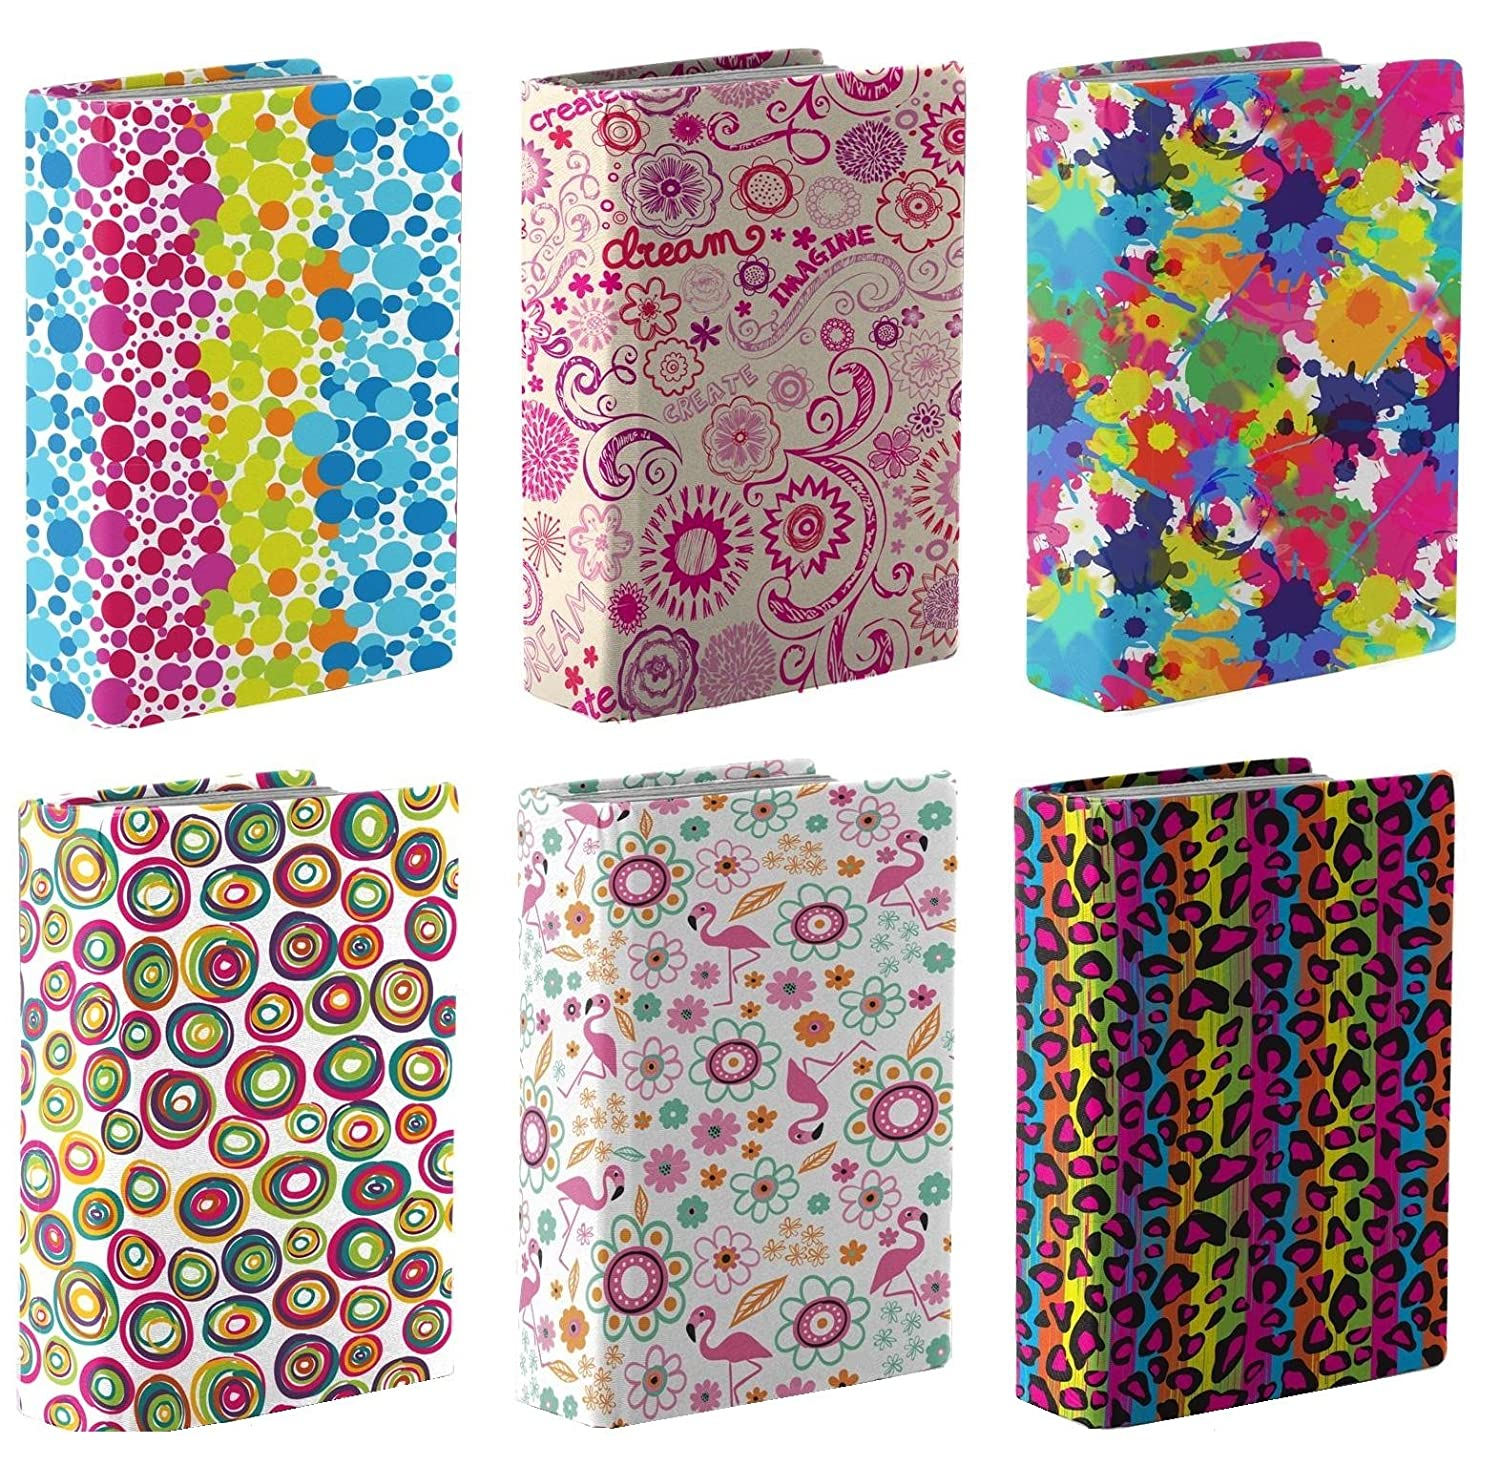 Pack of 6 Stretchable Book Covers - from Kittrich